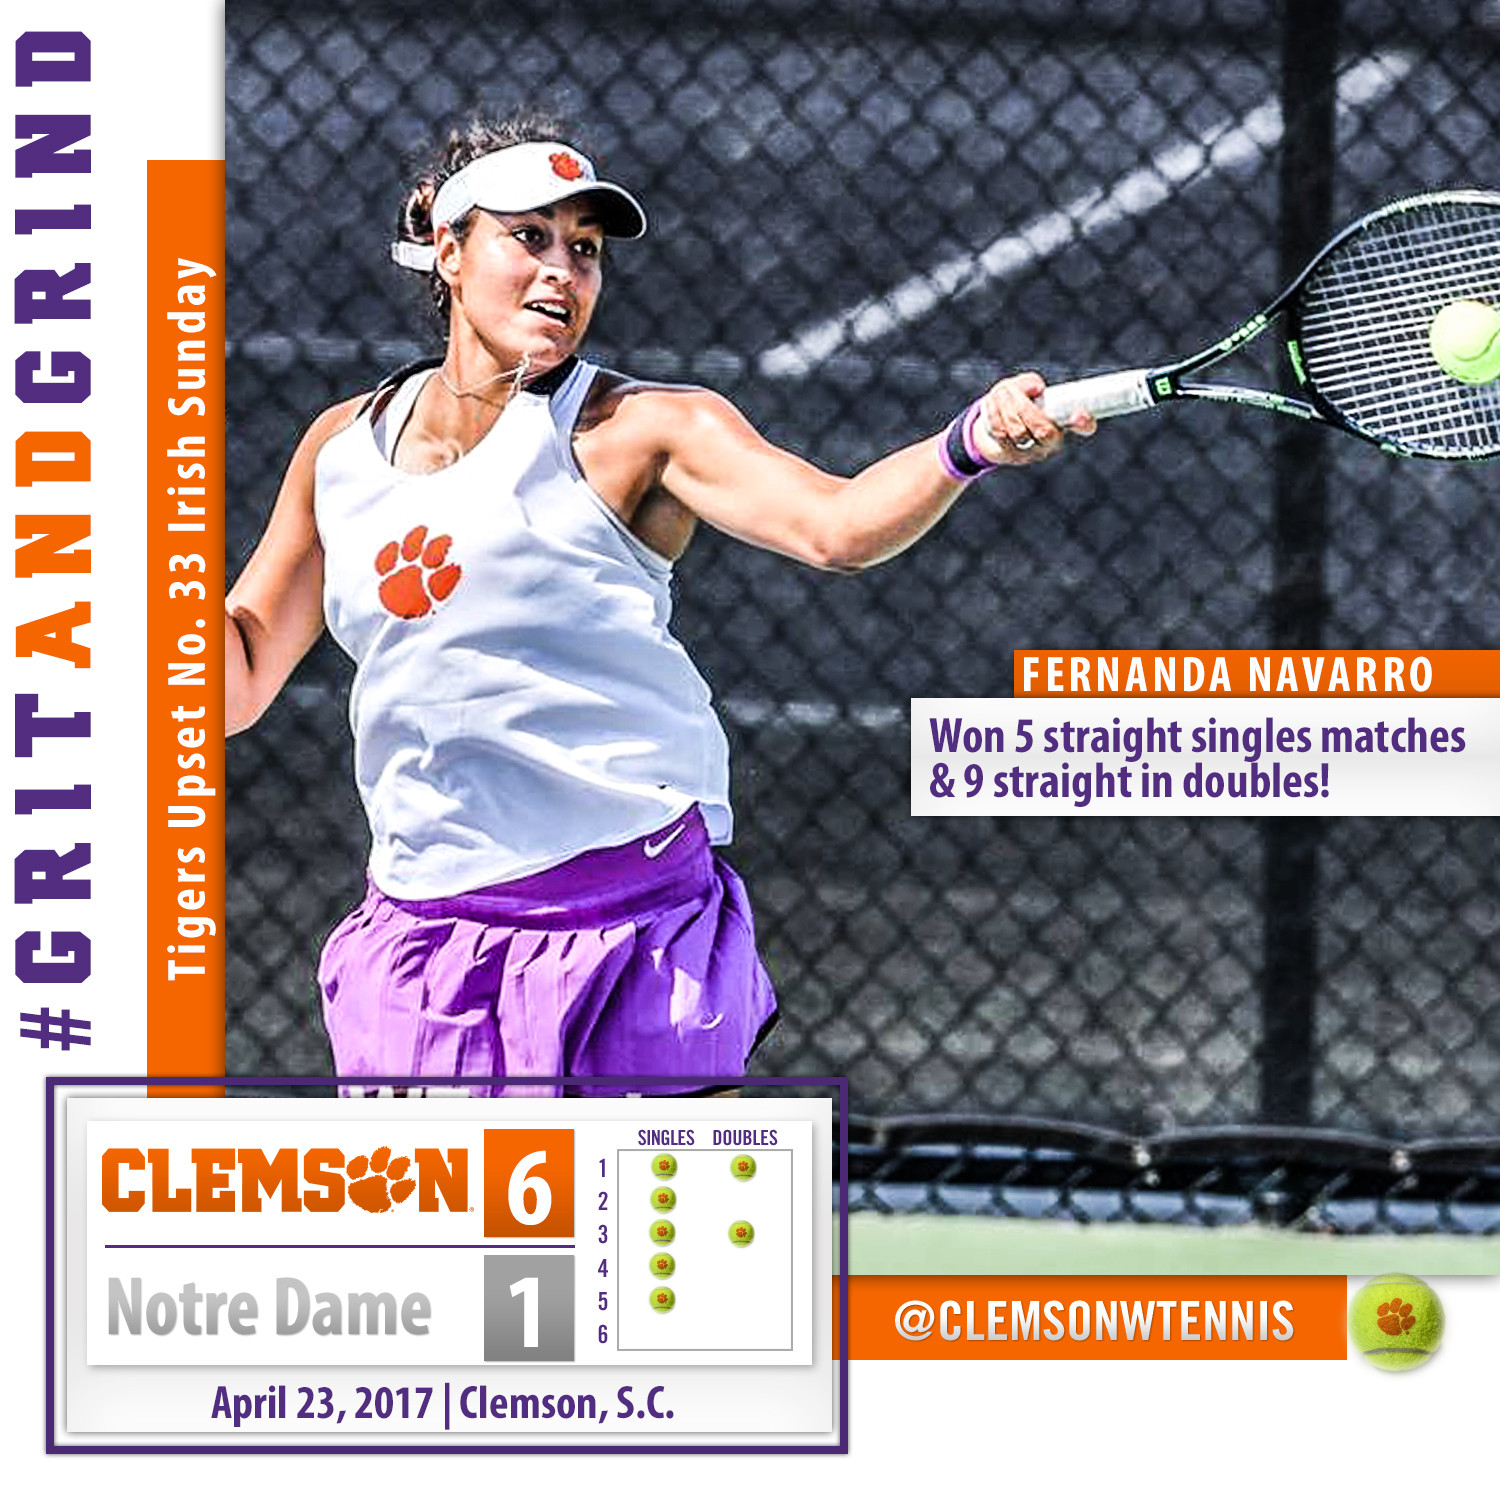 Clemson Concludes Regular Season with 6-1 Upset over #33 Notre Dame